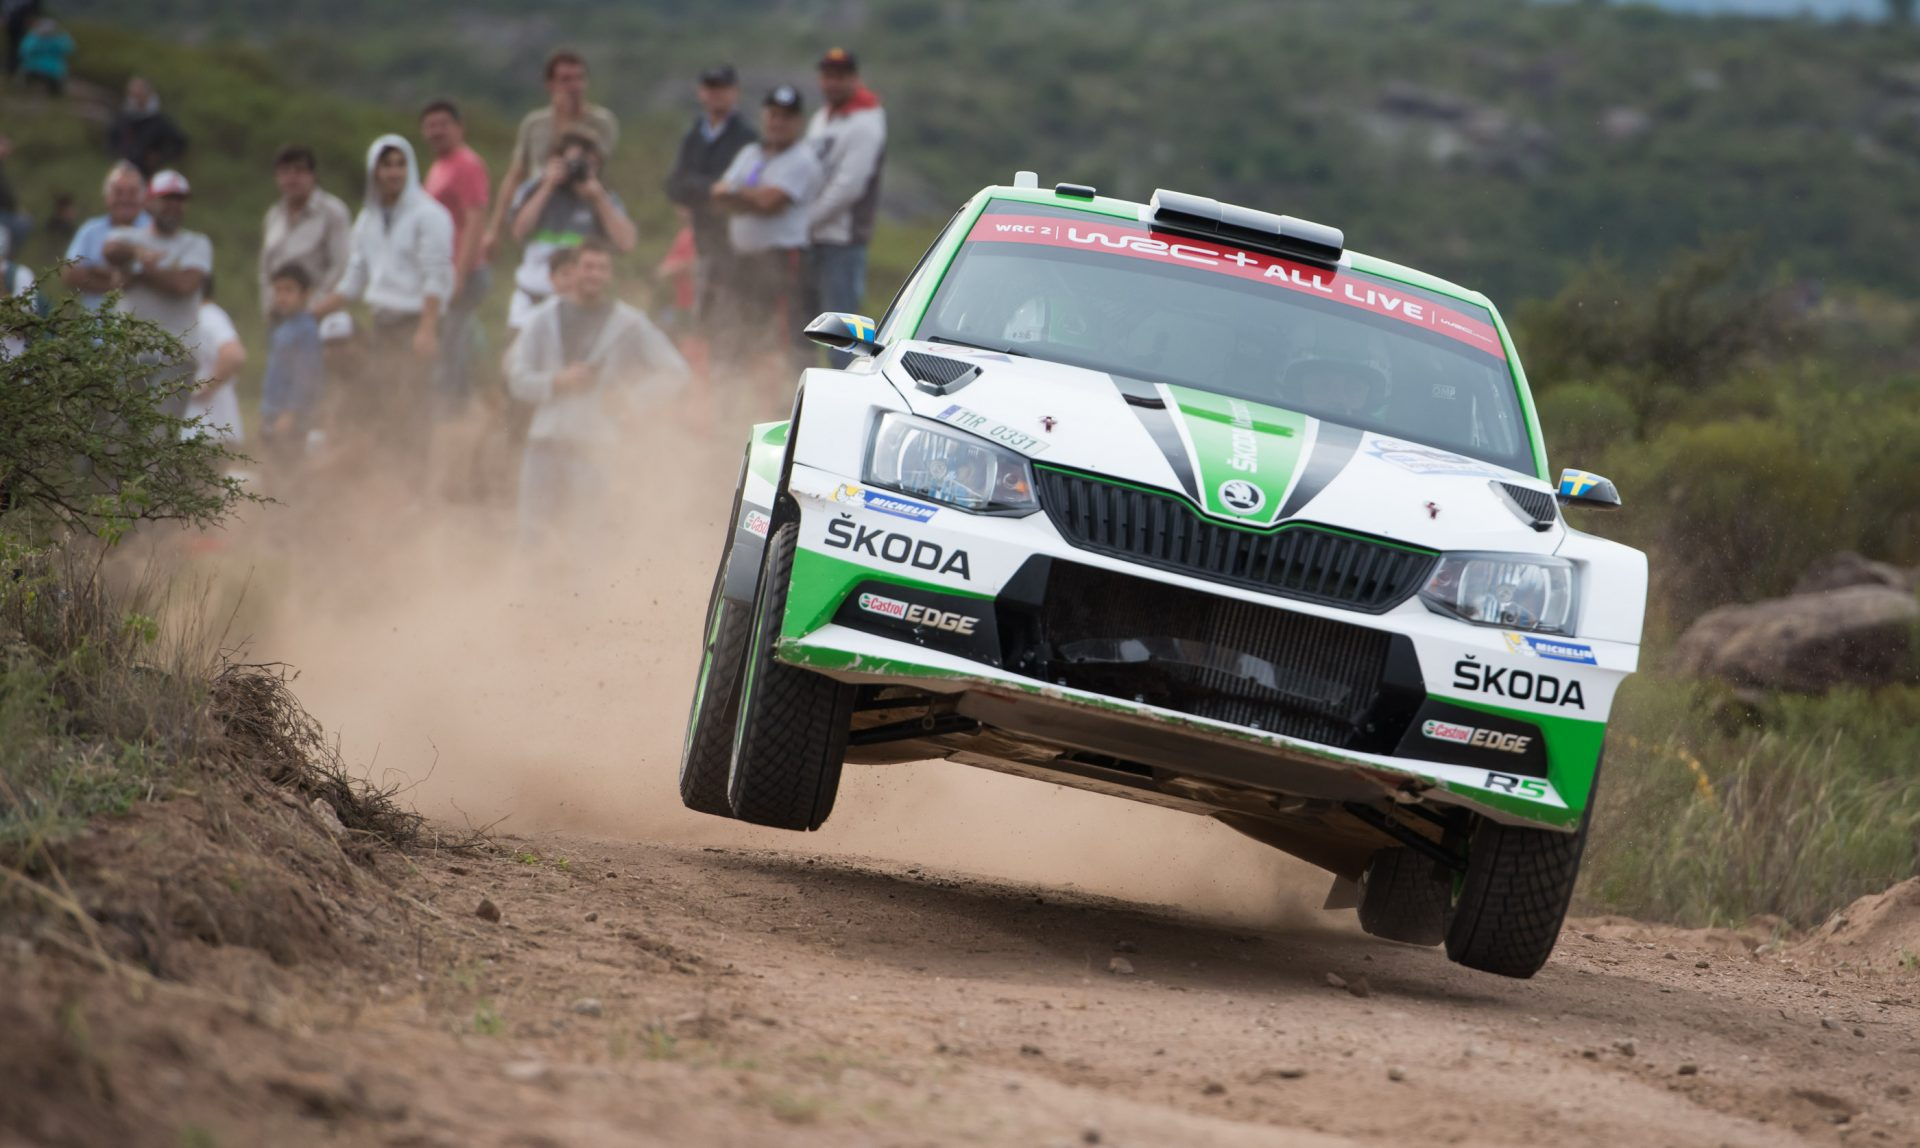 Rally Argentina: FABIA R5s Score First Two Places in Shakedown